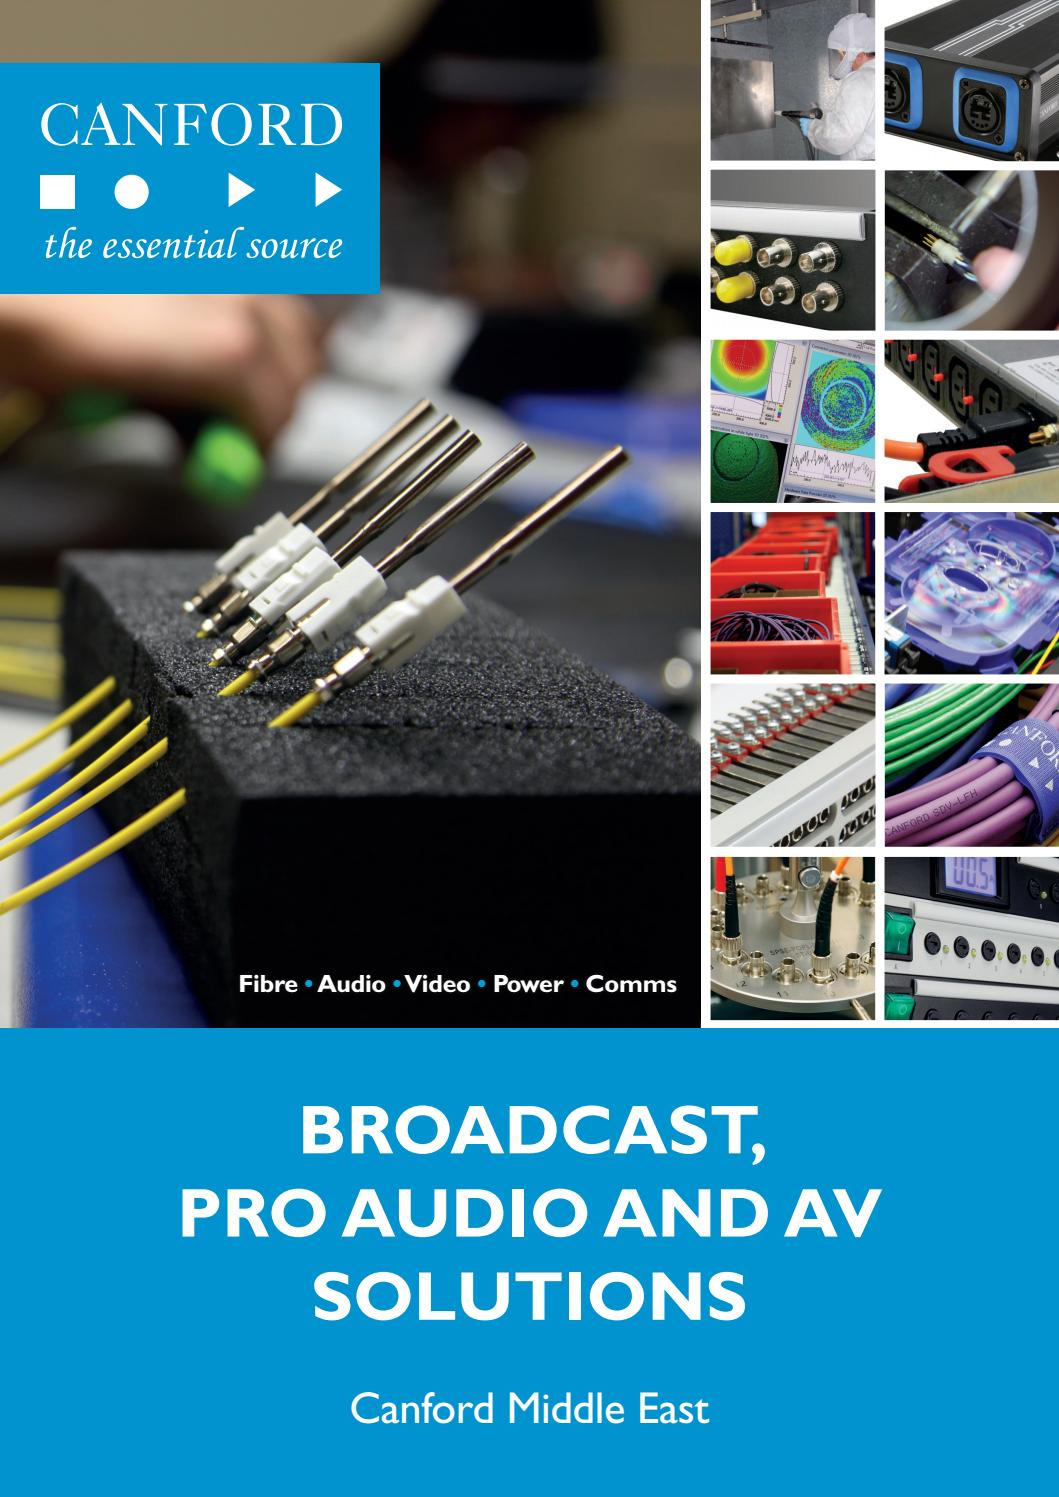 Cabsat 2018 Brochure By Canford Audio Issuu Dress Wires A V Installation Patch Panel To Switch On Rack